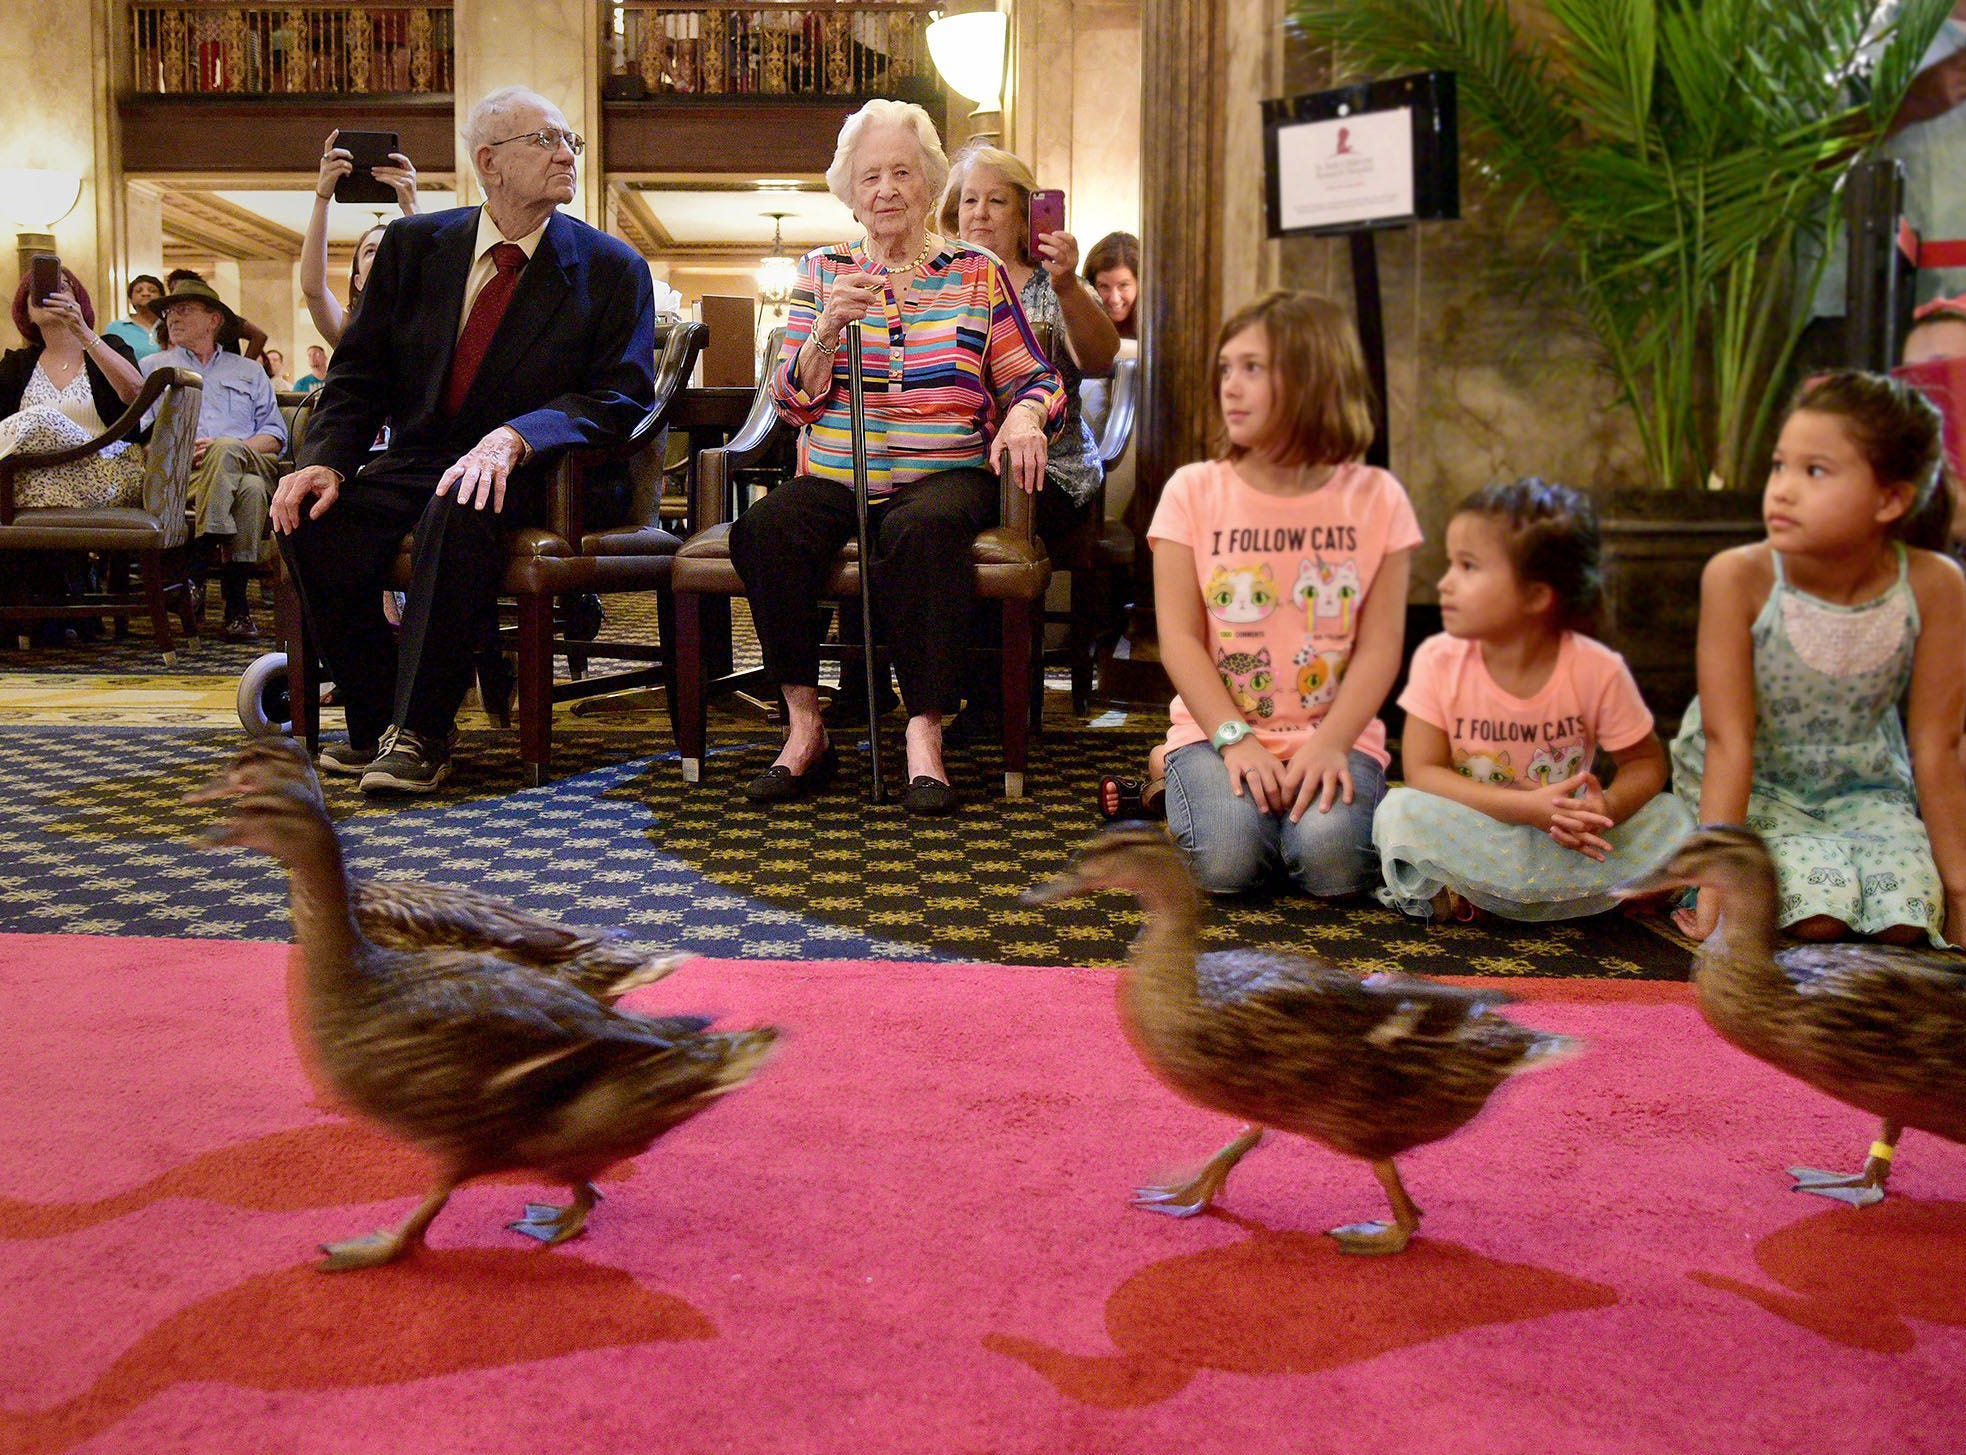 """Minnie Opal Hill, center, watches as the famous Peabody Ducks march toward the lobby's fountain July 28, 2018. Hill celebrated her 100th birthday at The Peabody Hotel by being named honorary duckmaster. Hill had visited the historic hotel on numerous occasions, but today was the first time she witnessed the famous """"March of the Peabody Ducks."""""""